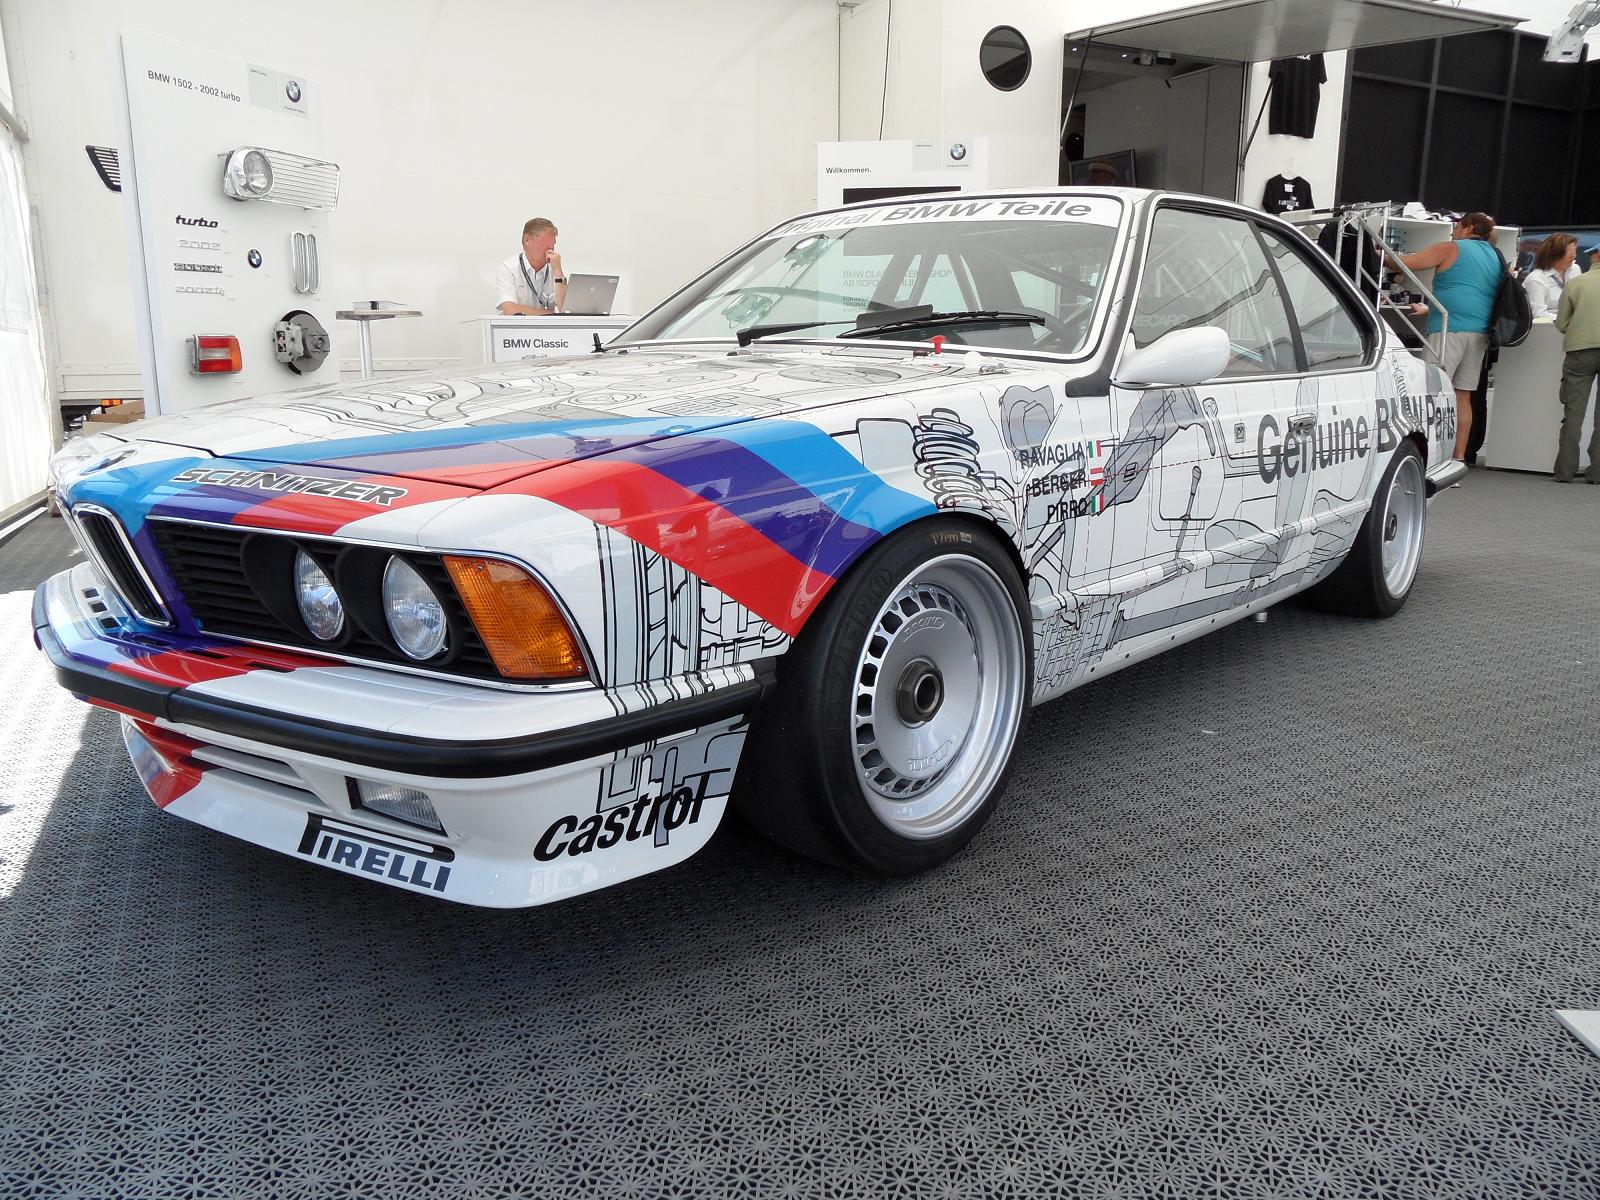 File:BMW E24 635 CSi Grp A Works Original BMW Teile front side.JPG